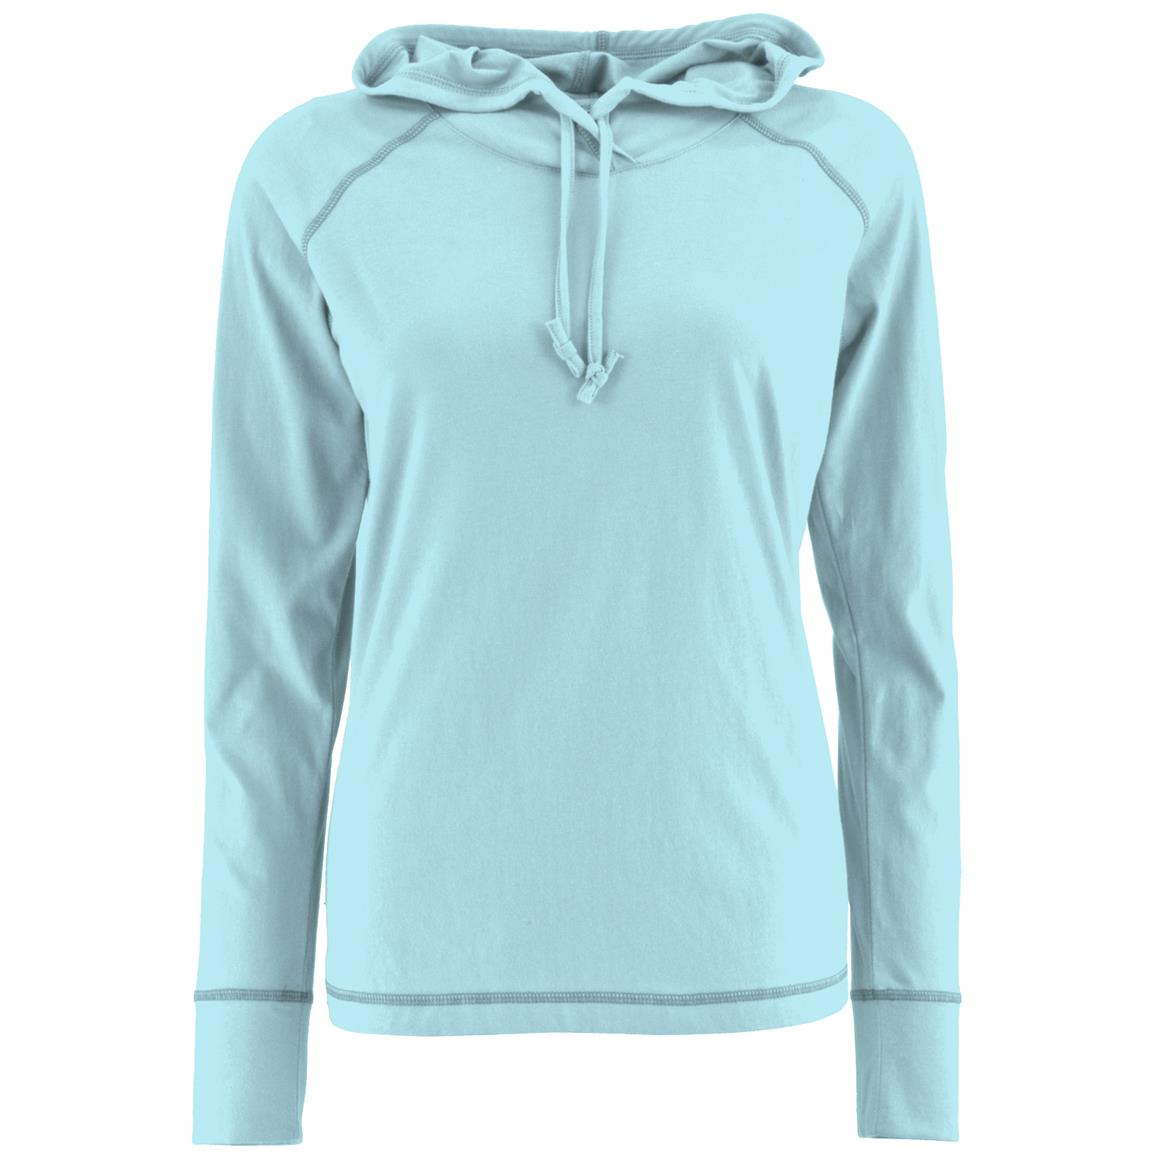 Women's Bug-free Pullover Hoodie, Permethrin, Sky Blue